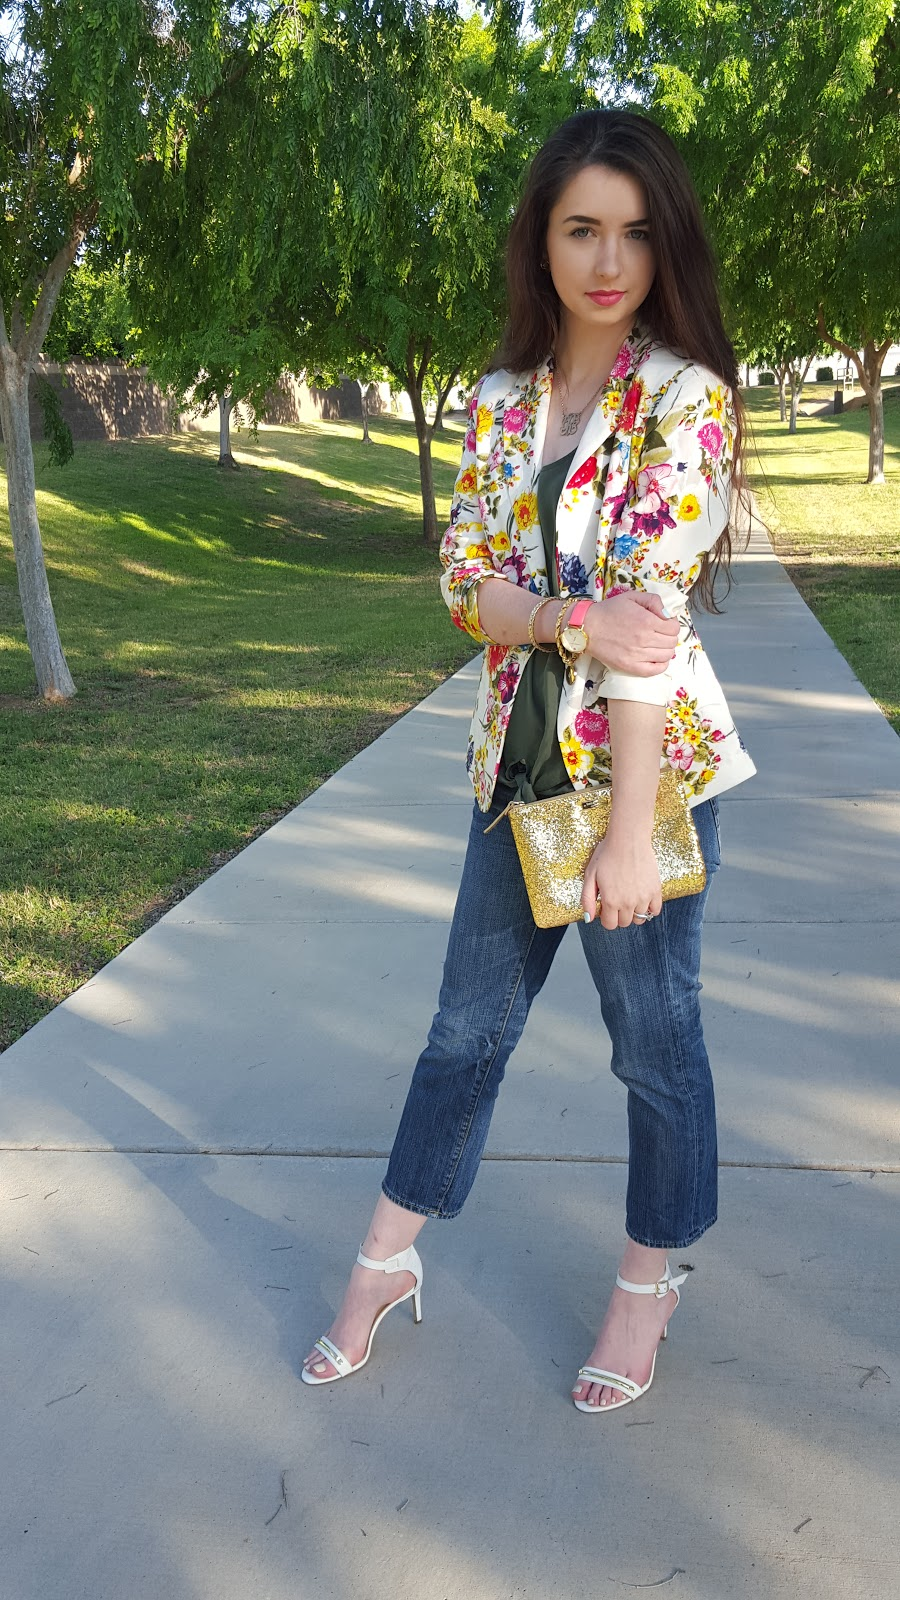 Spring outfit idea- floral top and jeans